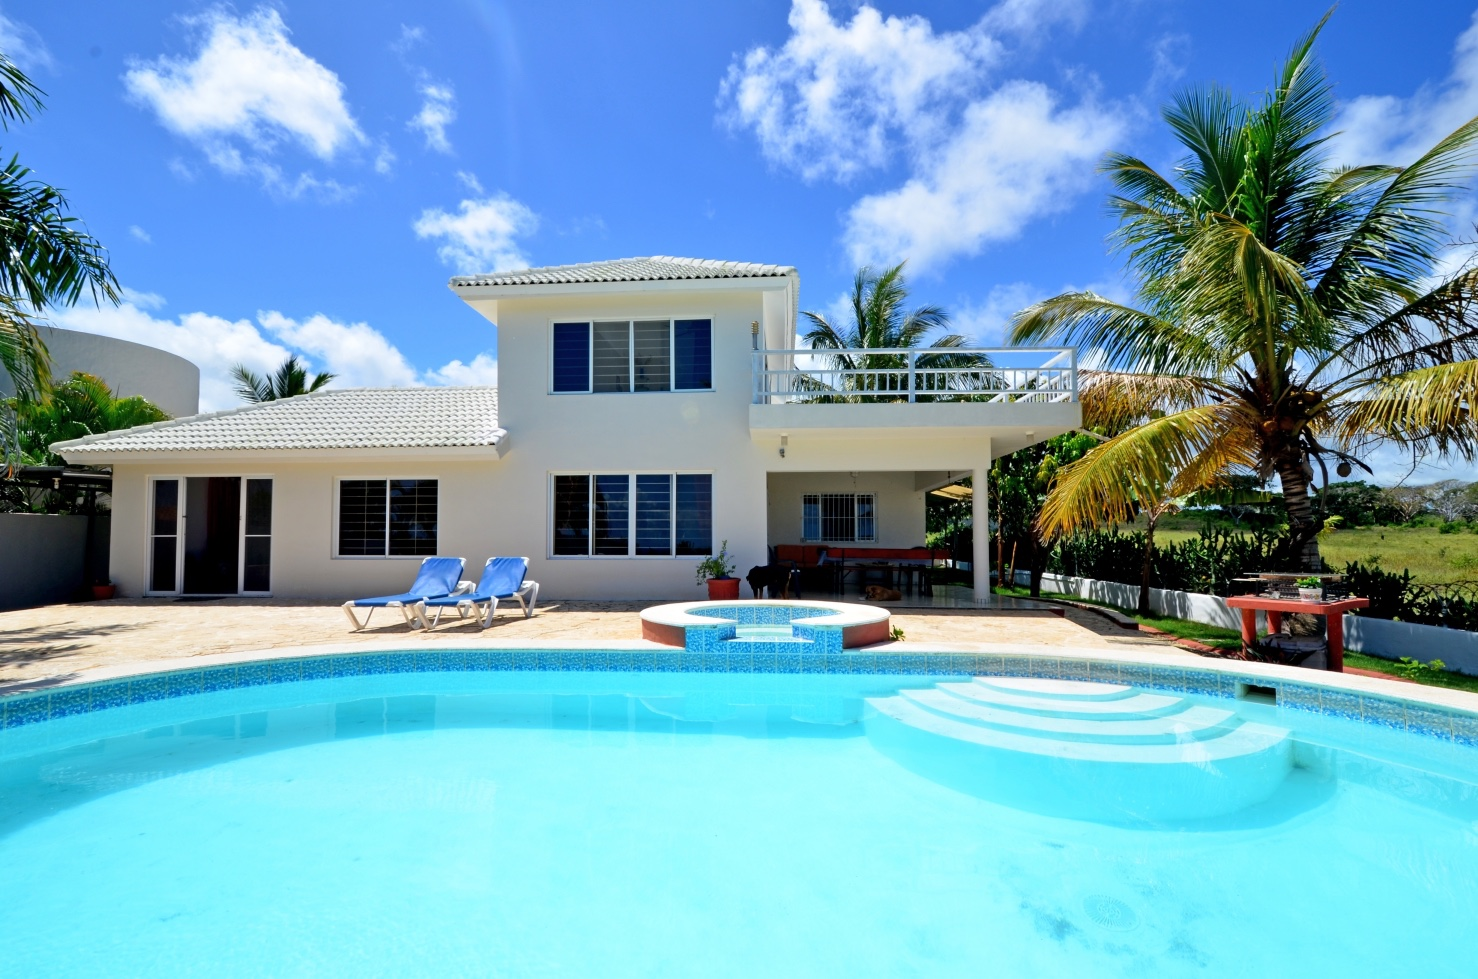 4 bedroom Villa For Sale with Scenery